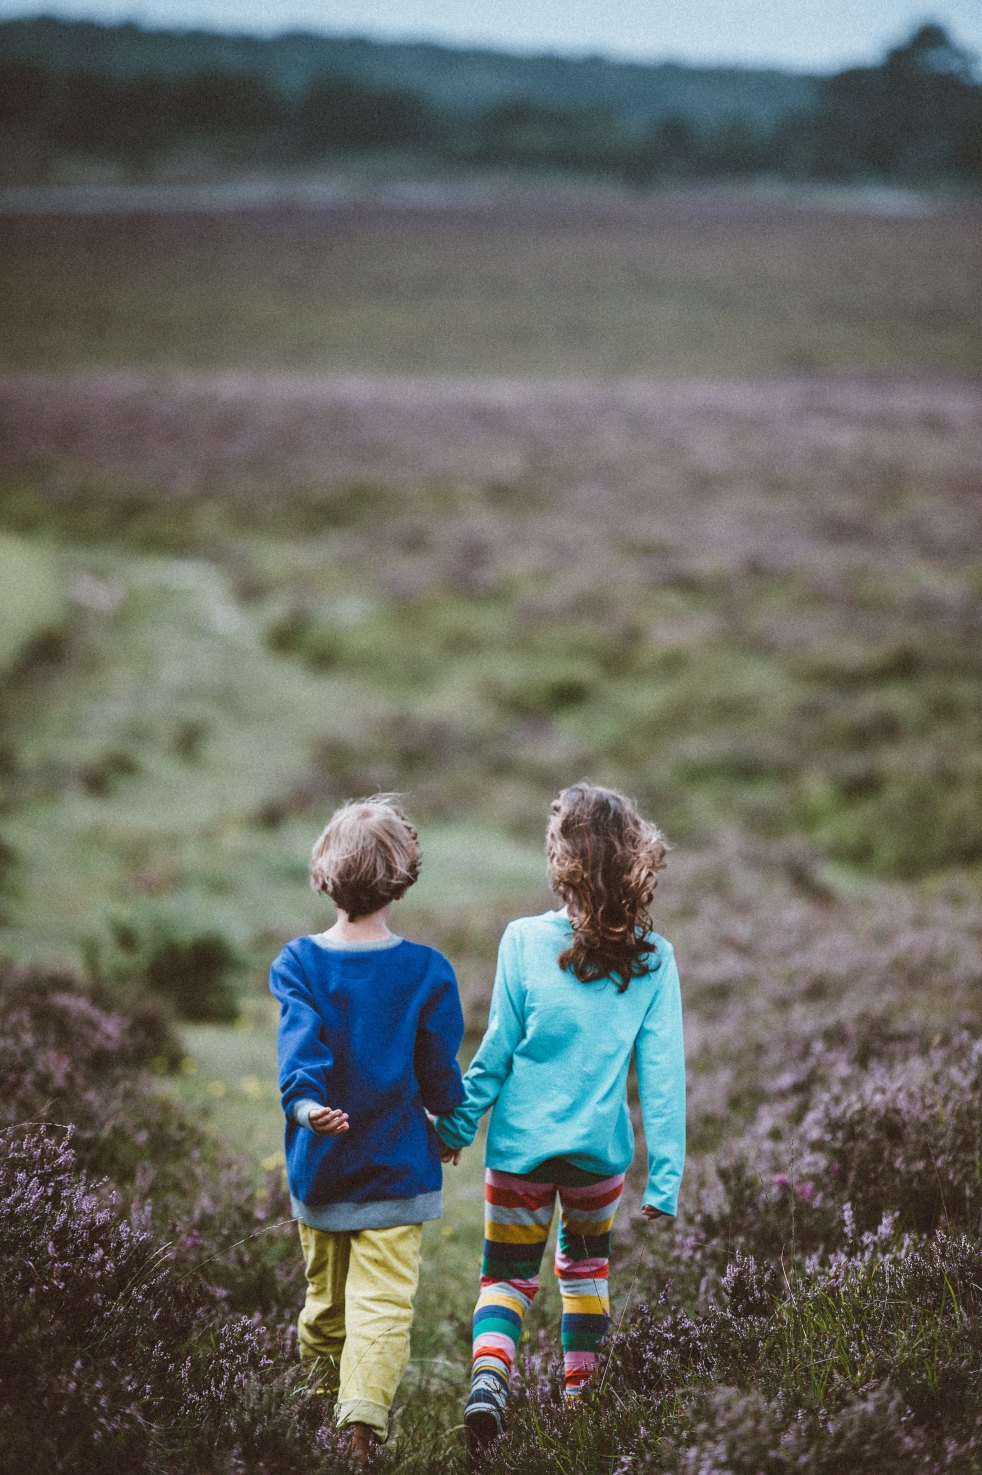 Photo by Annie Spratt on Unsplash. Image description: rear view of two children walking across a field. The one on the left has blond hair, bluu=e sweater and yellow pants. The one on the right has long wavy brown hair, a turquoise sweater, and stripey colourful leggings. They are holding hands,